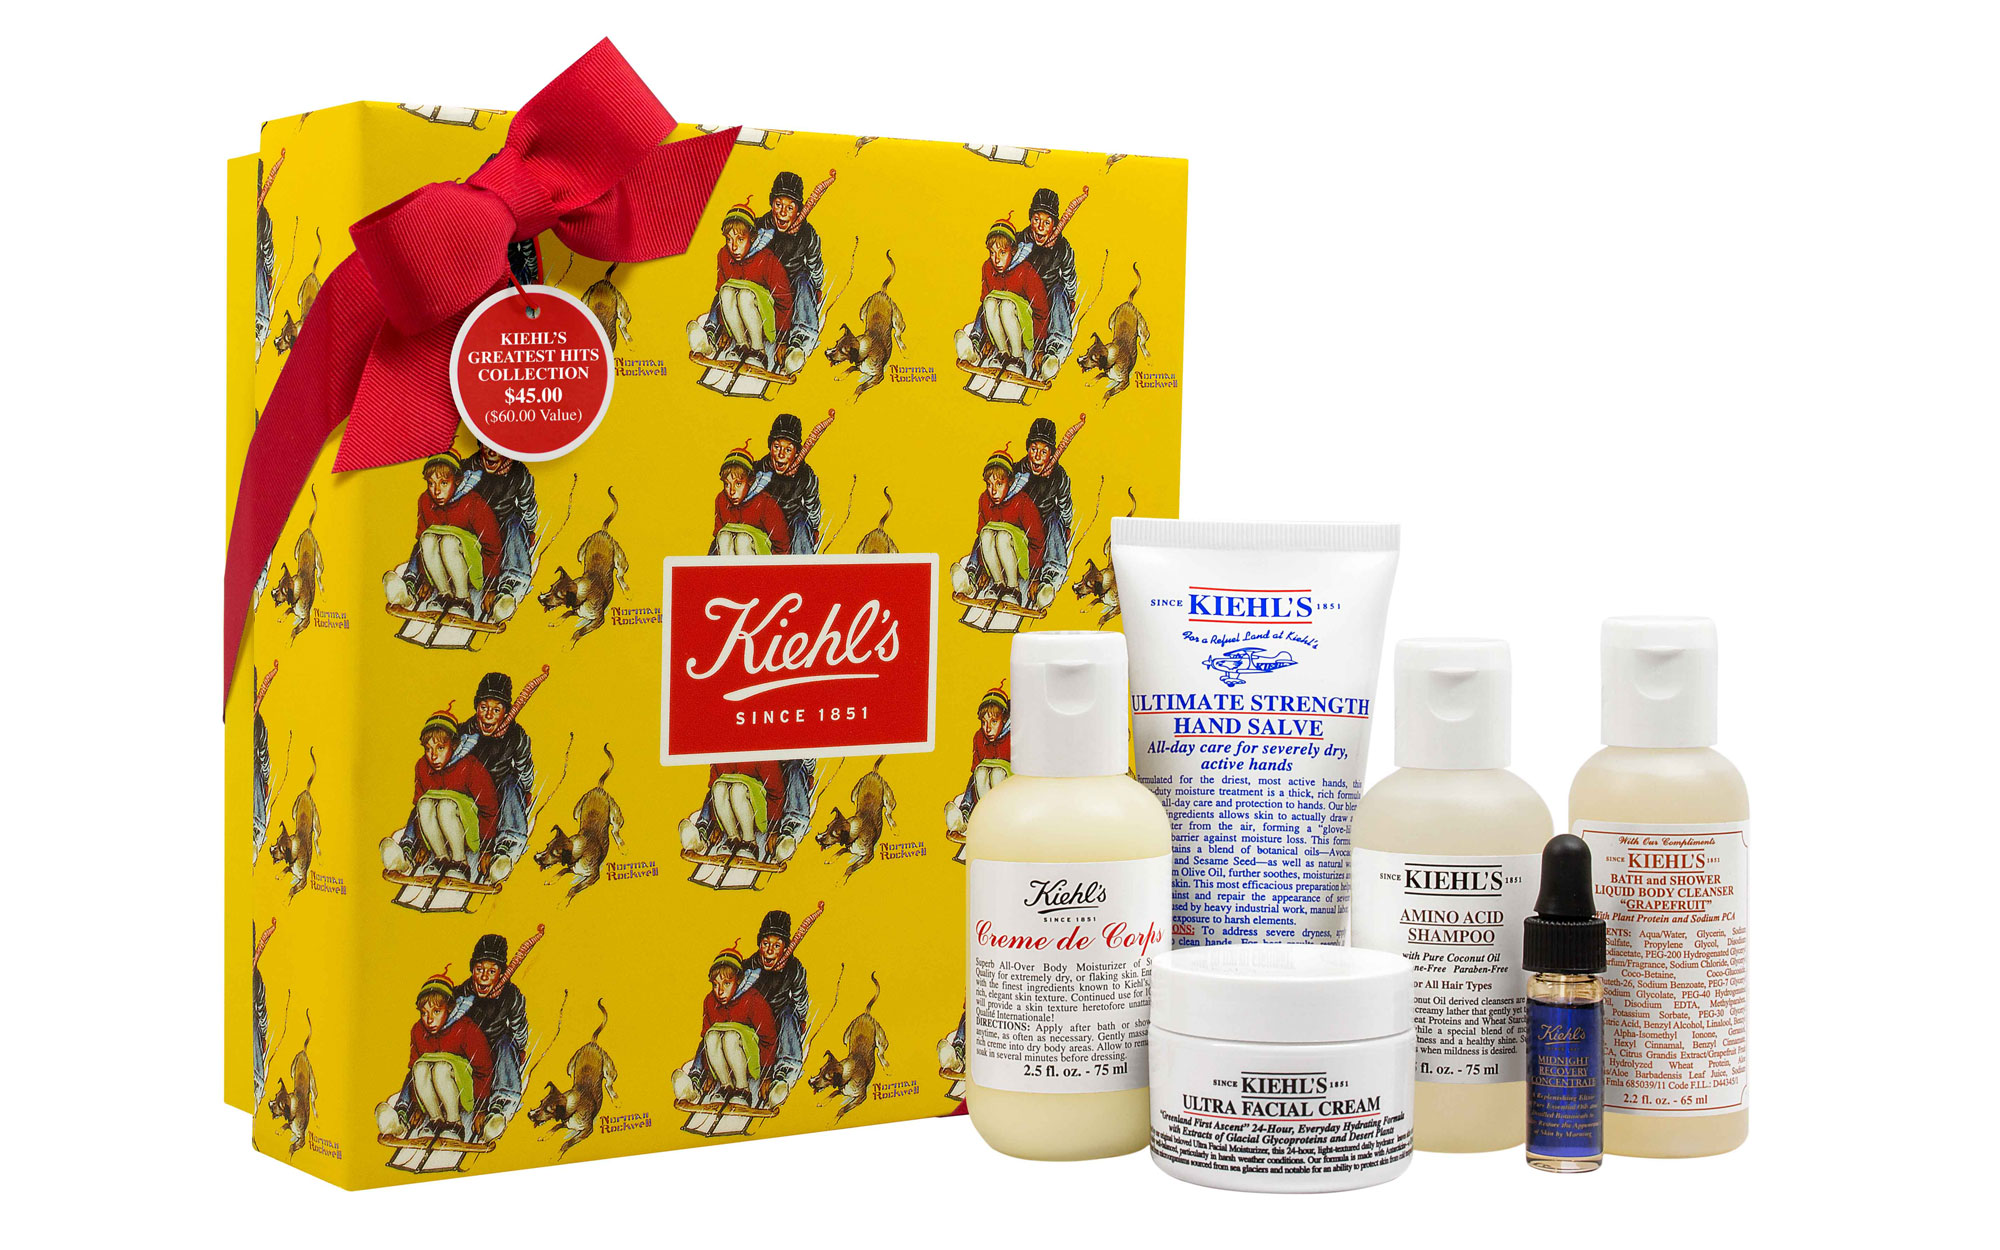 Best Beauty Gifts for Travelers: Kiehl's Greatest Hits Collection